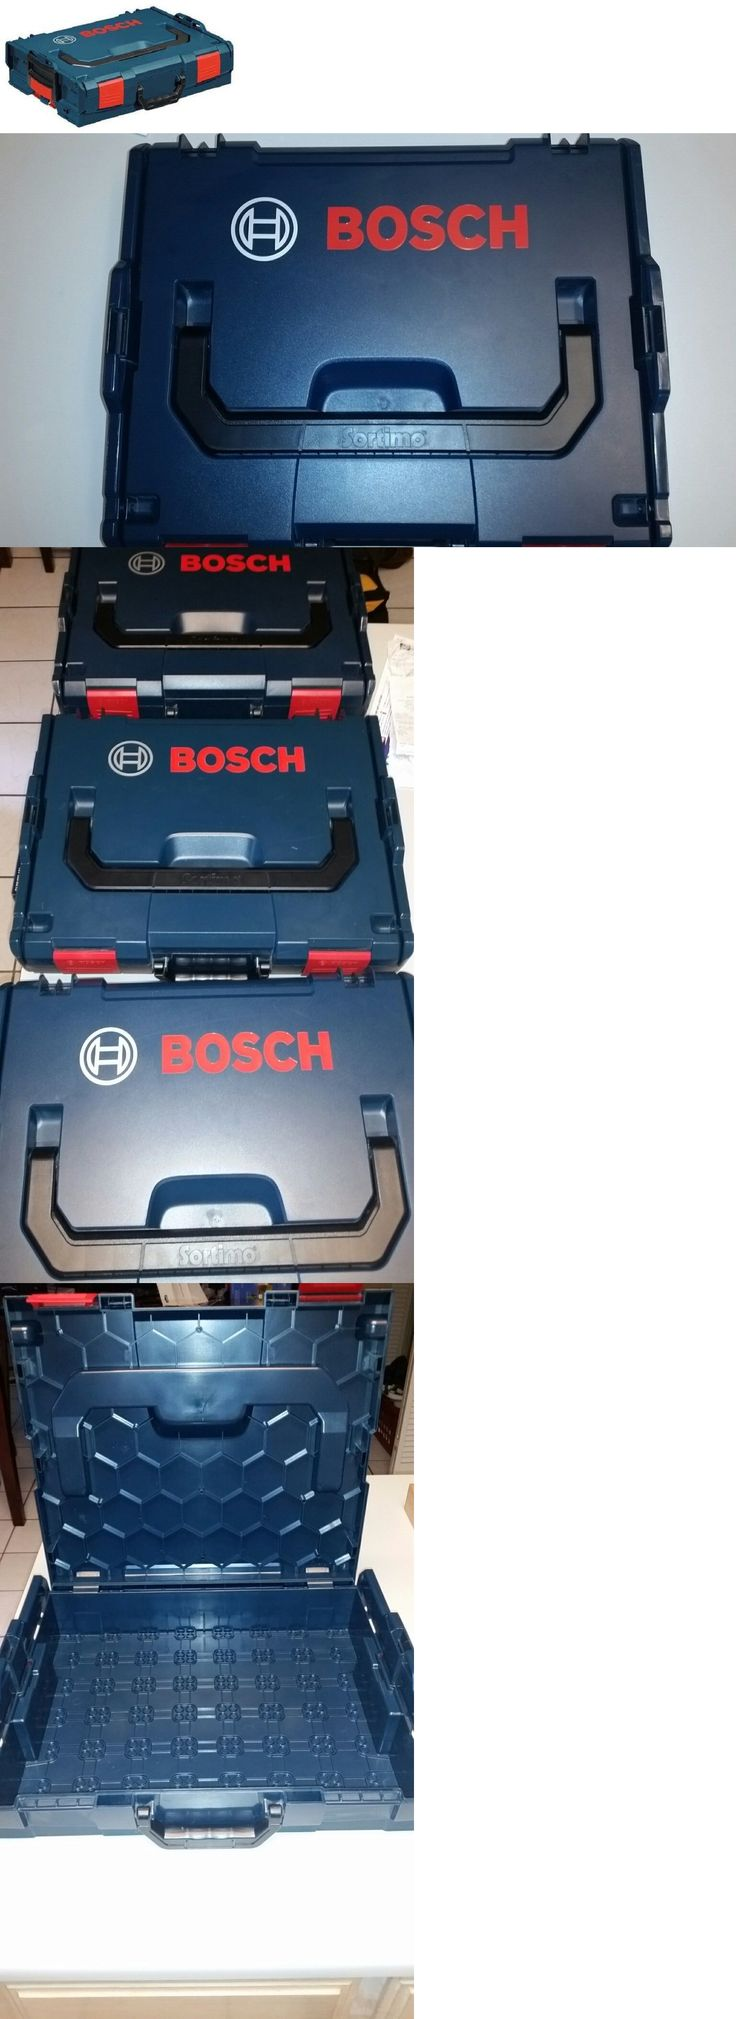 Boxes and Cabinets 42363: New Bosch L-Boxx-1 New Stackable Storage Case Toolbox Sortimo Lboxx Lboxx1 Lbox -> BUY IT NOW ONLY: $37.95 on eBay!